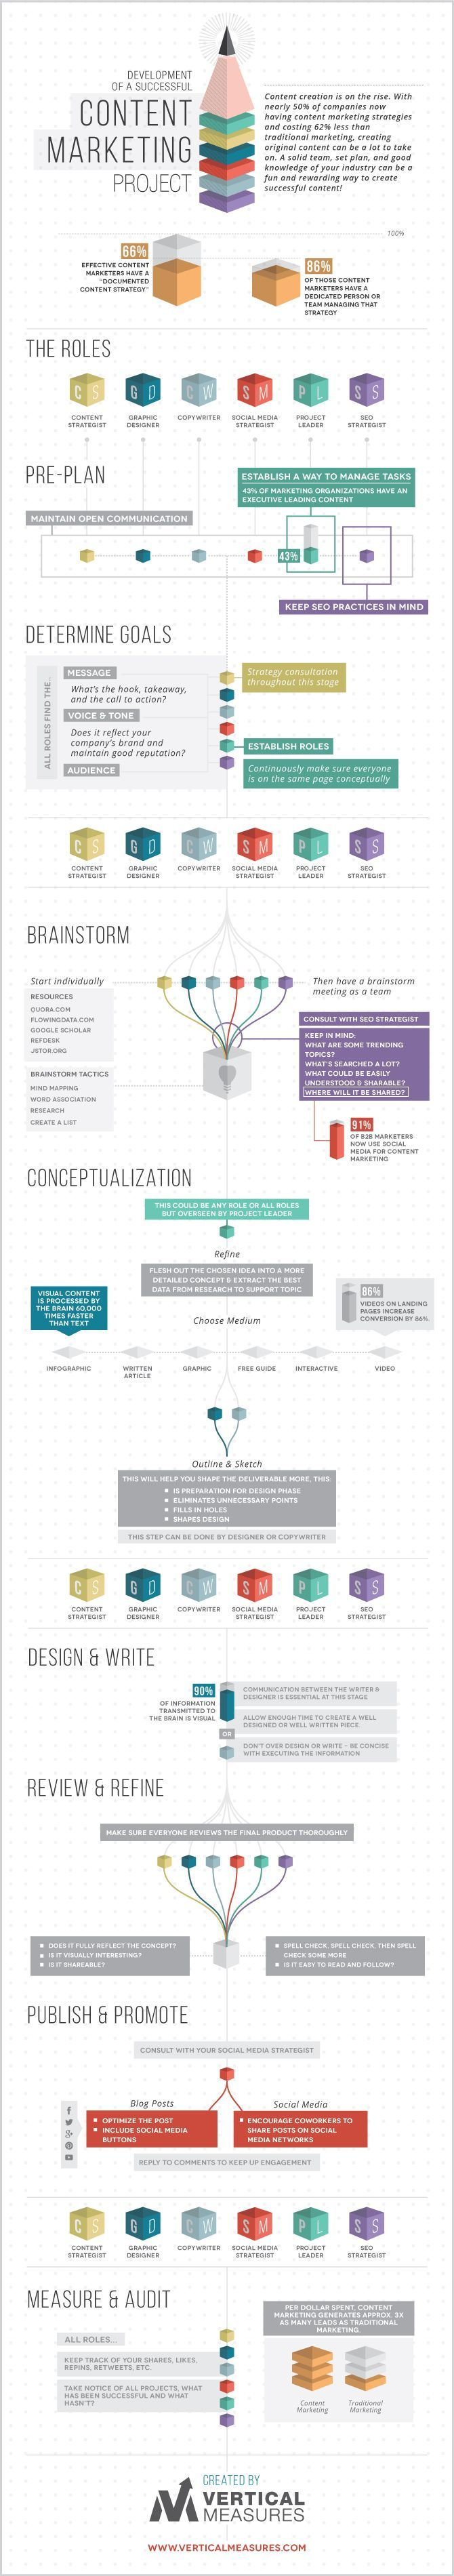 Developing a Successful #ContentMarketing Strategy - #infographic